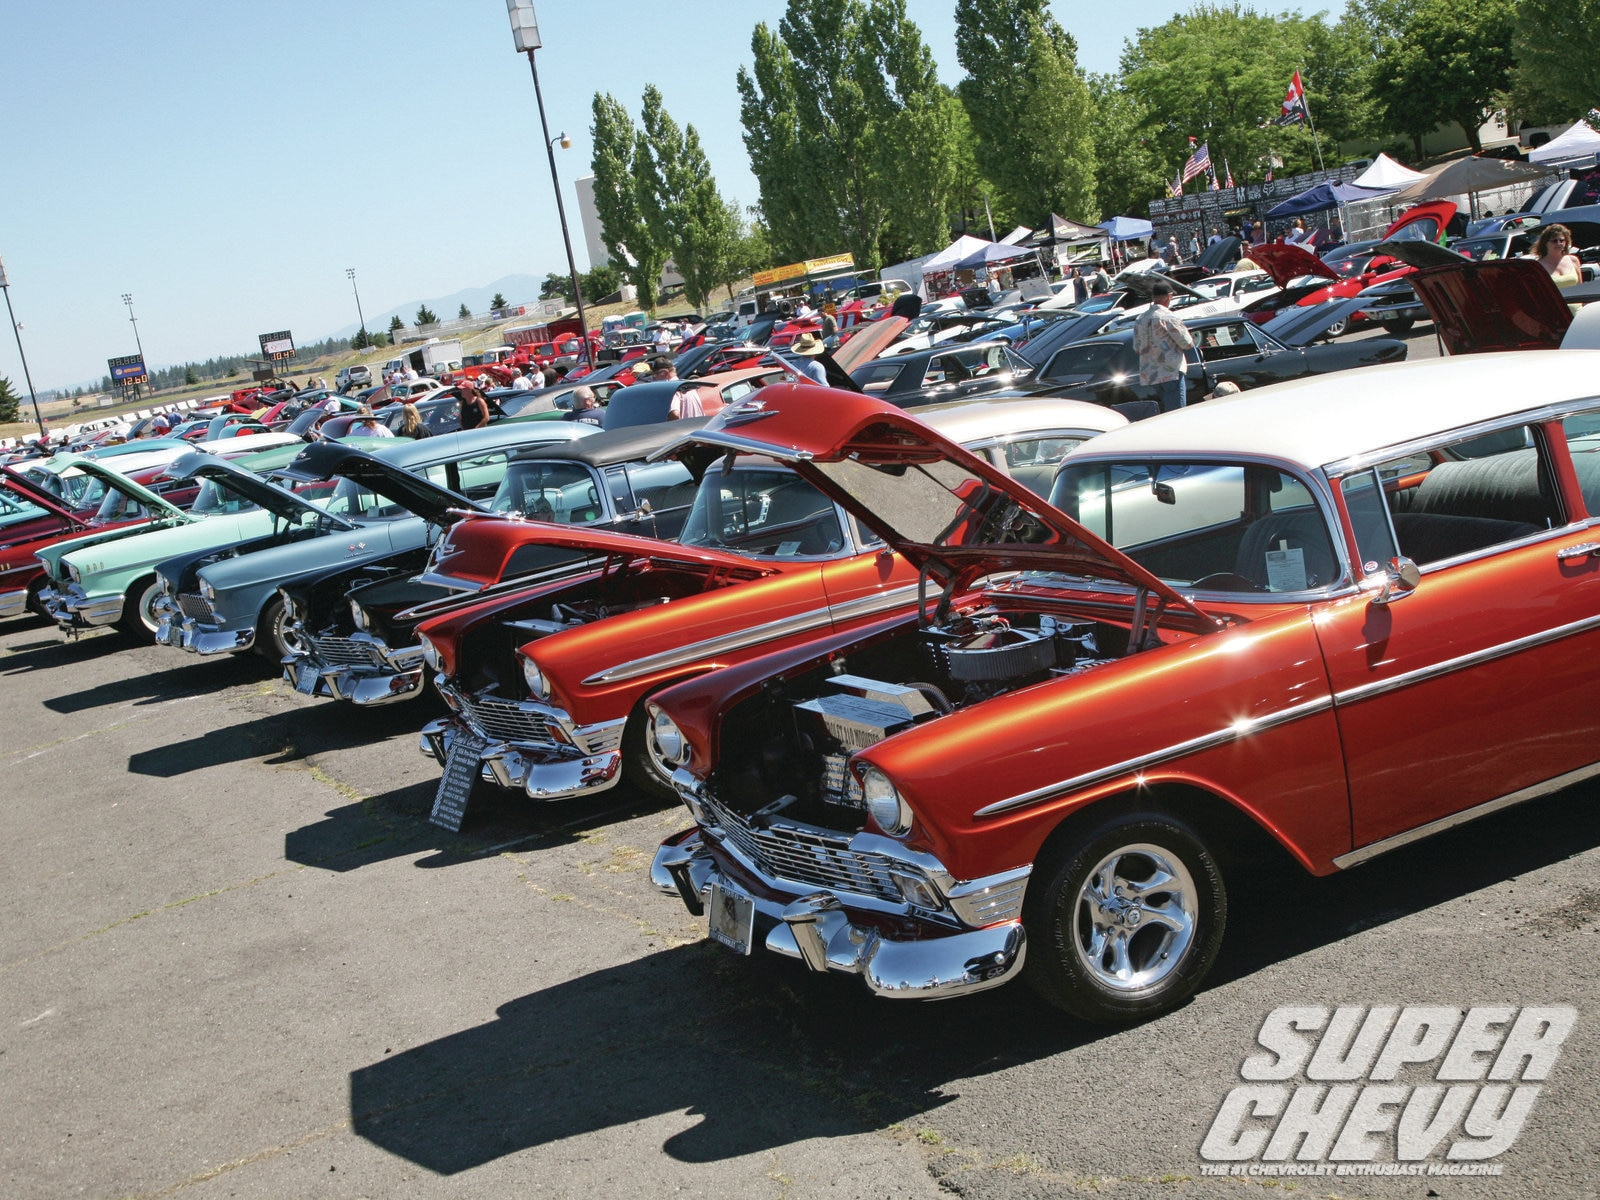 Sucp 1112 01 O Super Chevy Show Spokane